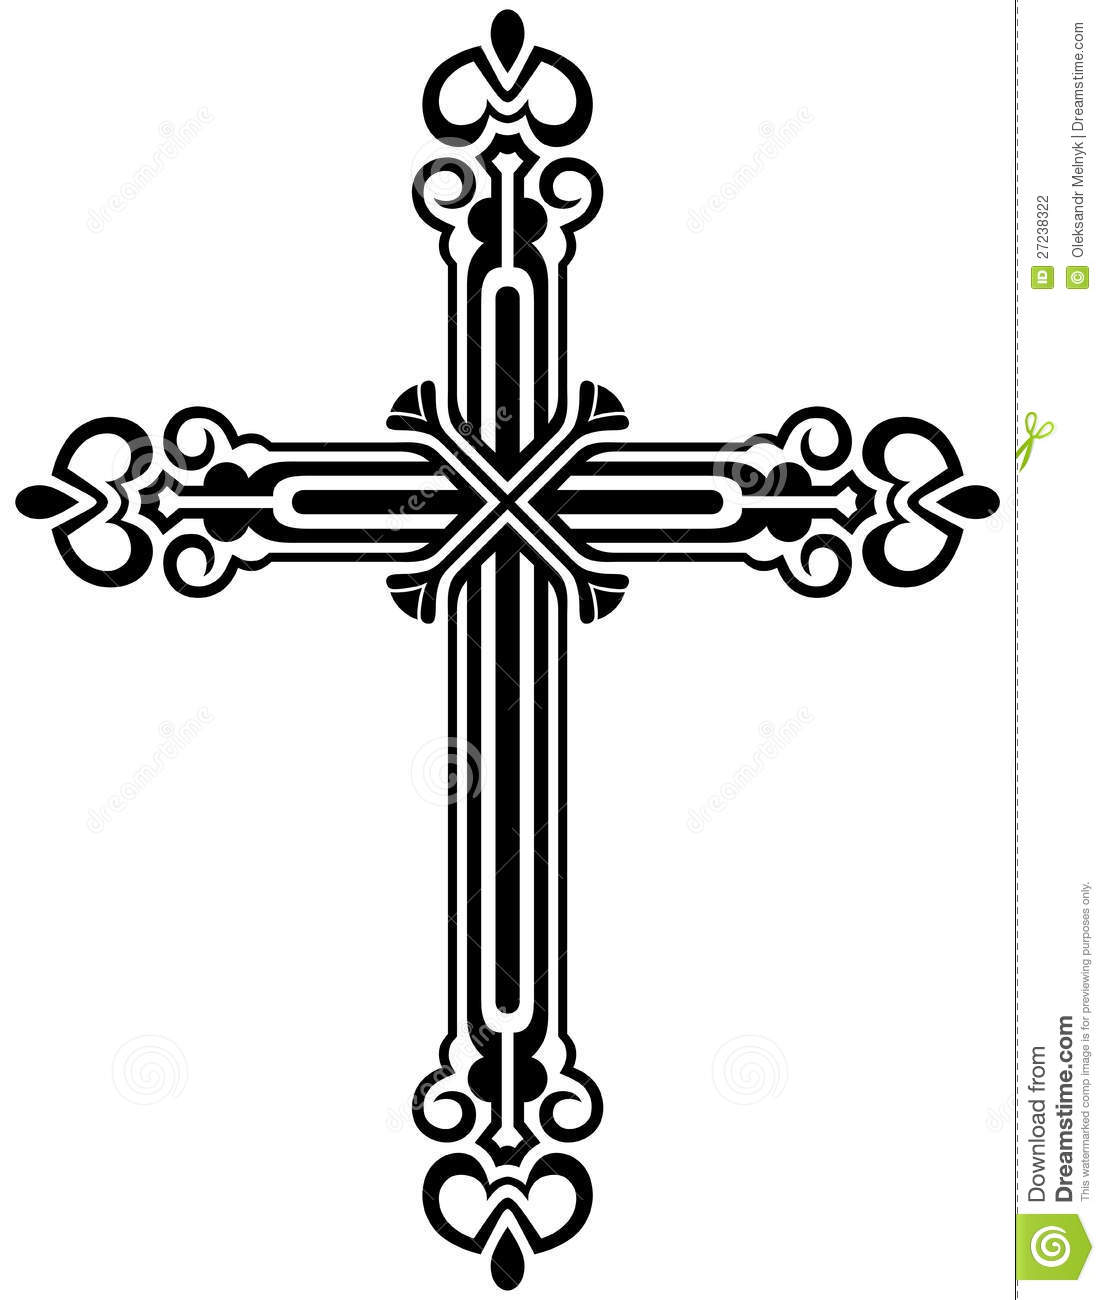 1105x1300 Christian Cross Black And White Clipart